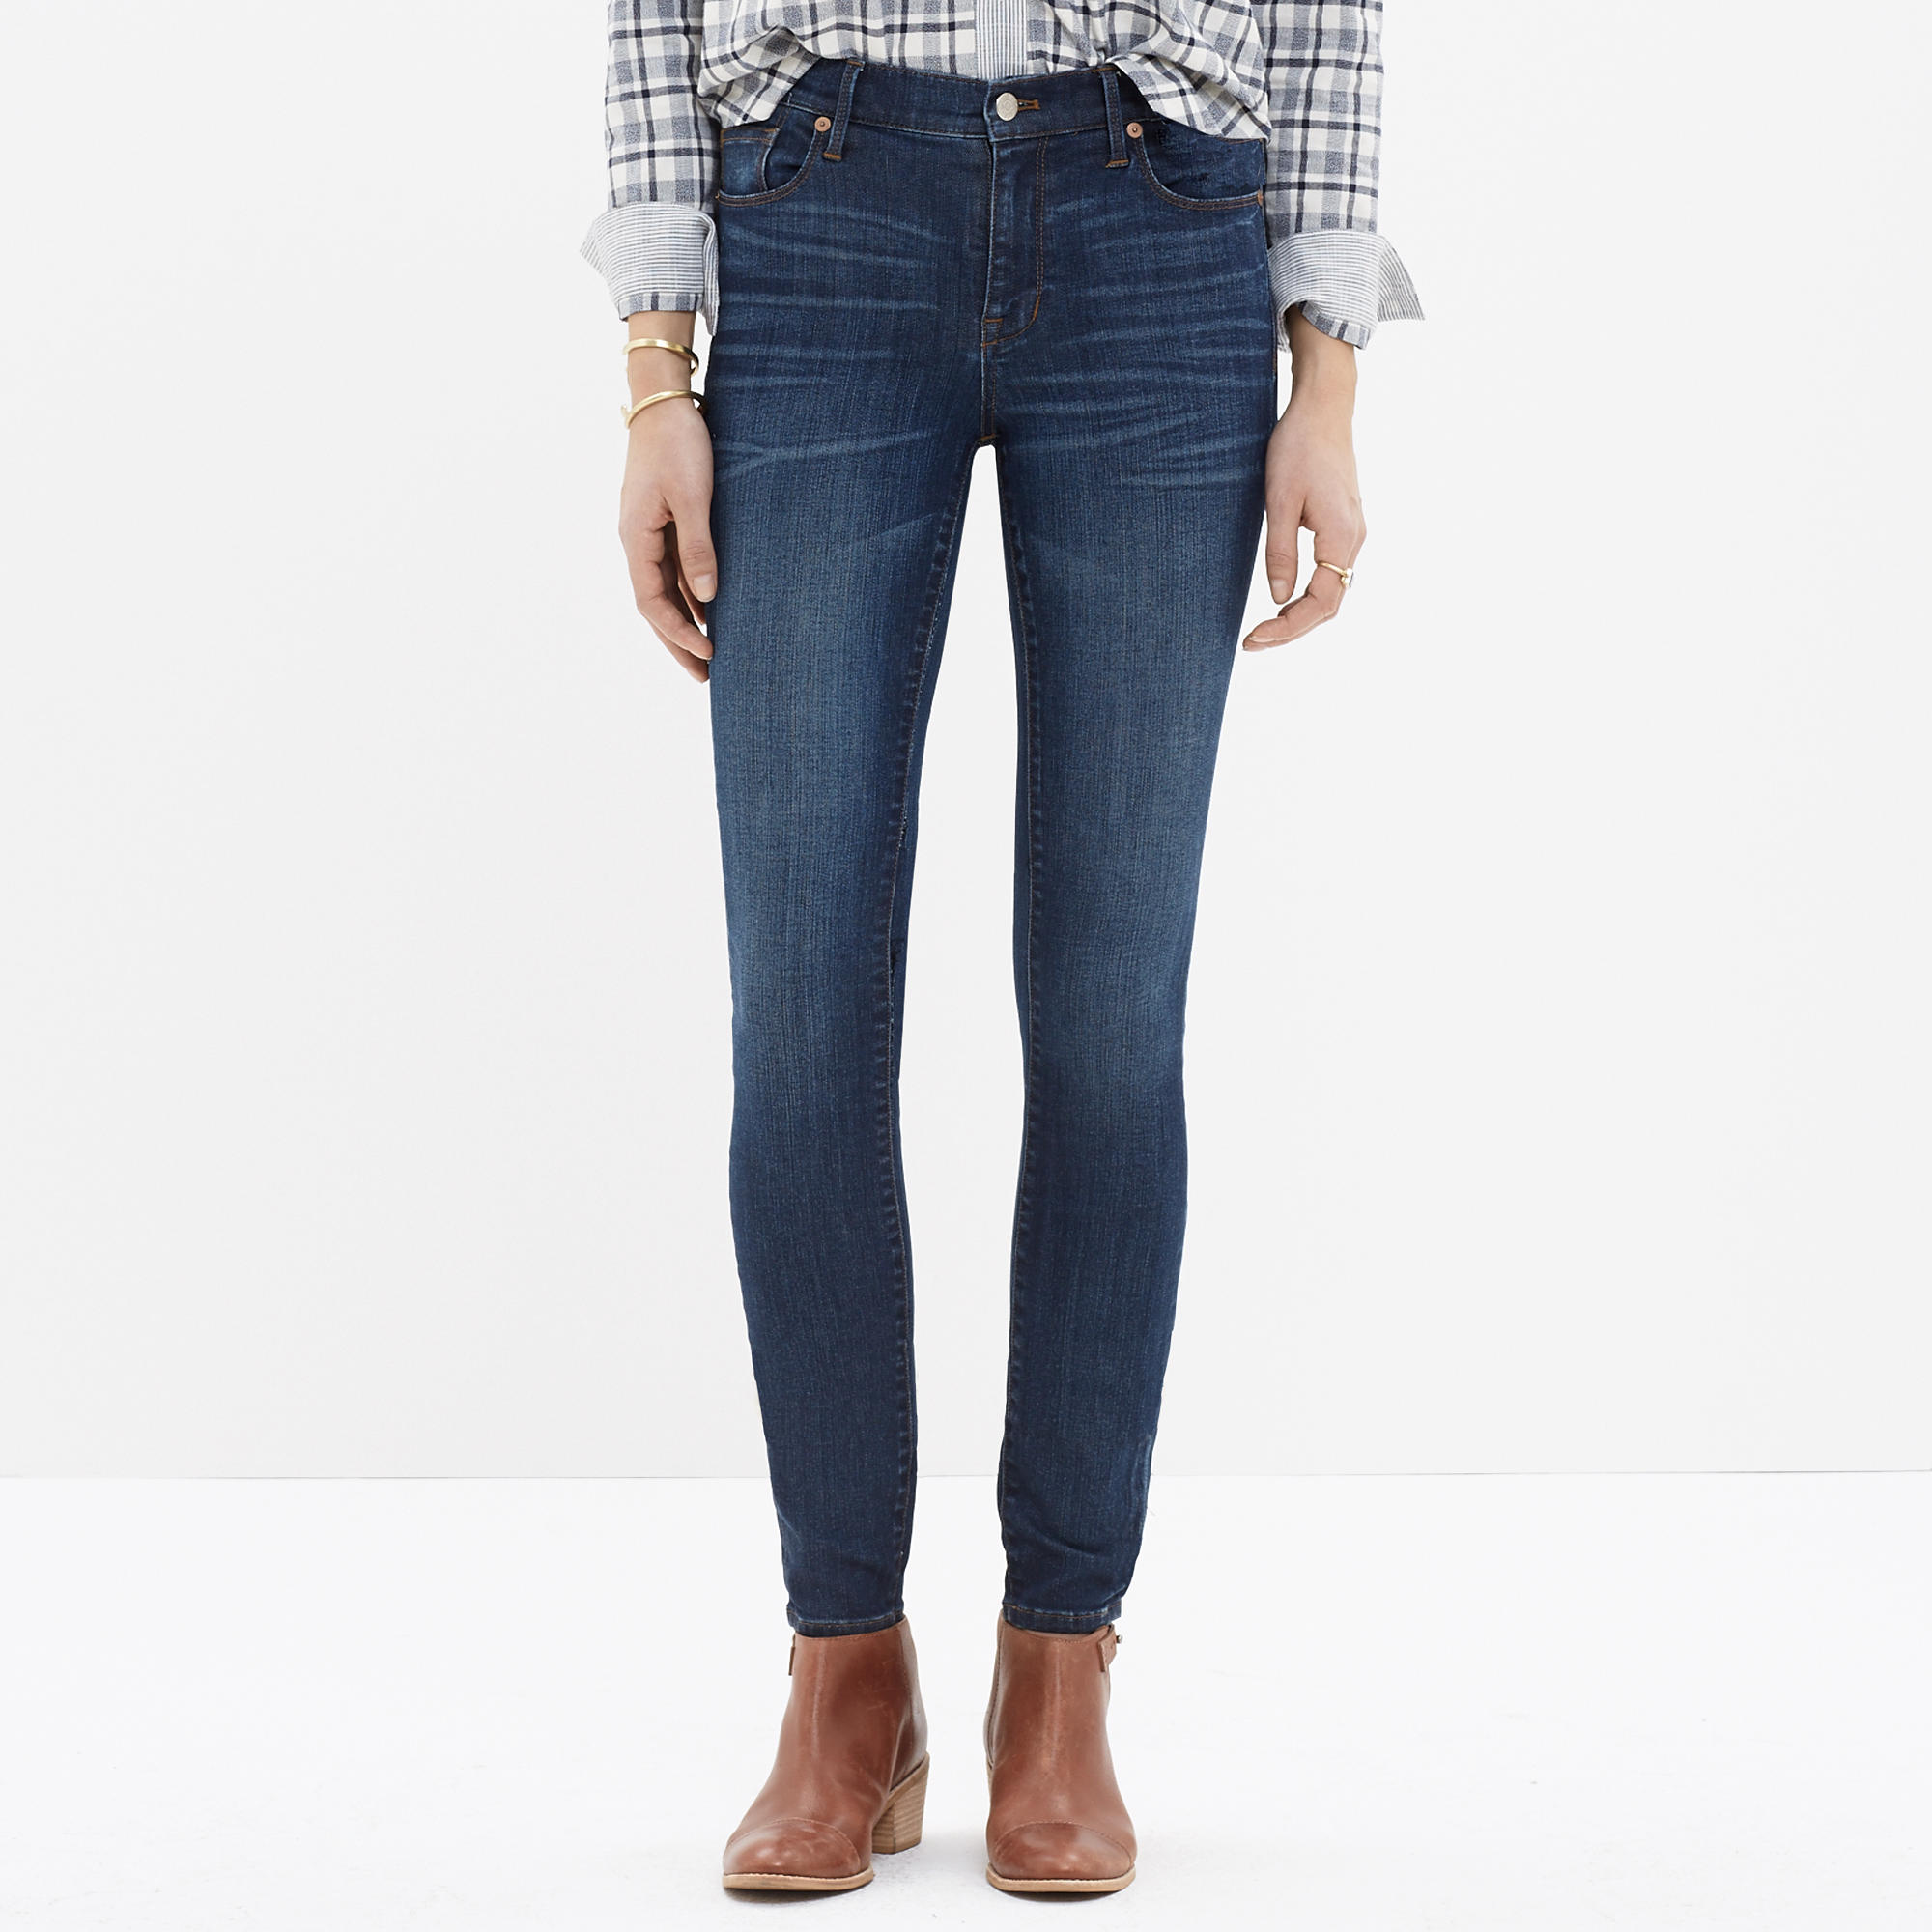 Order Jeans Online For Cheap - Jeans Am